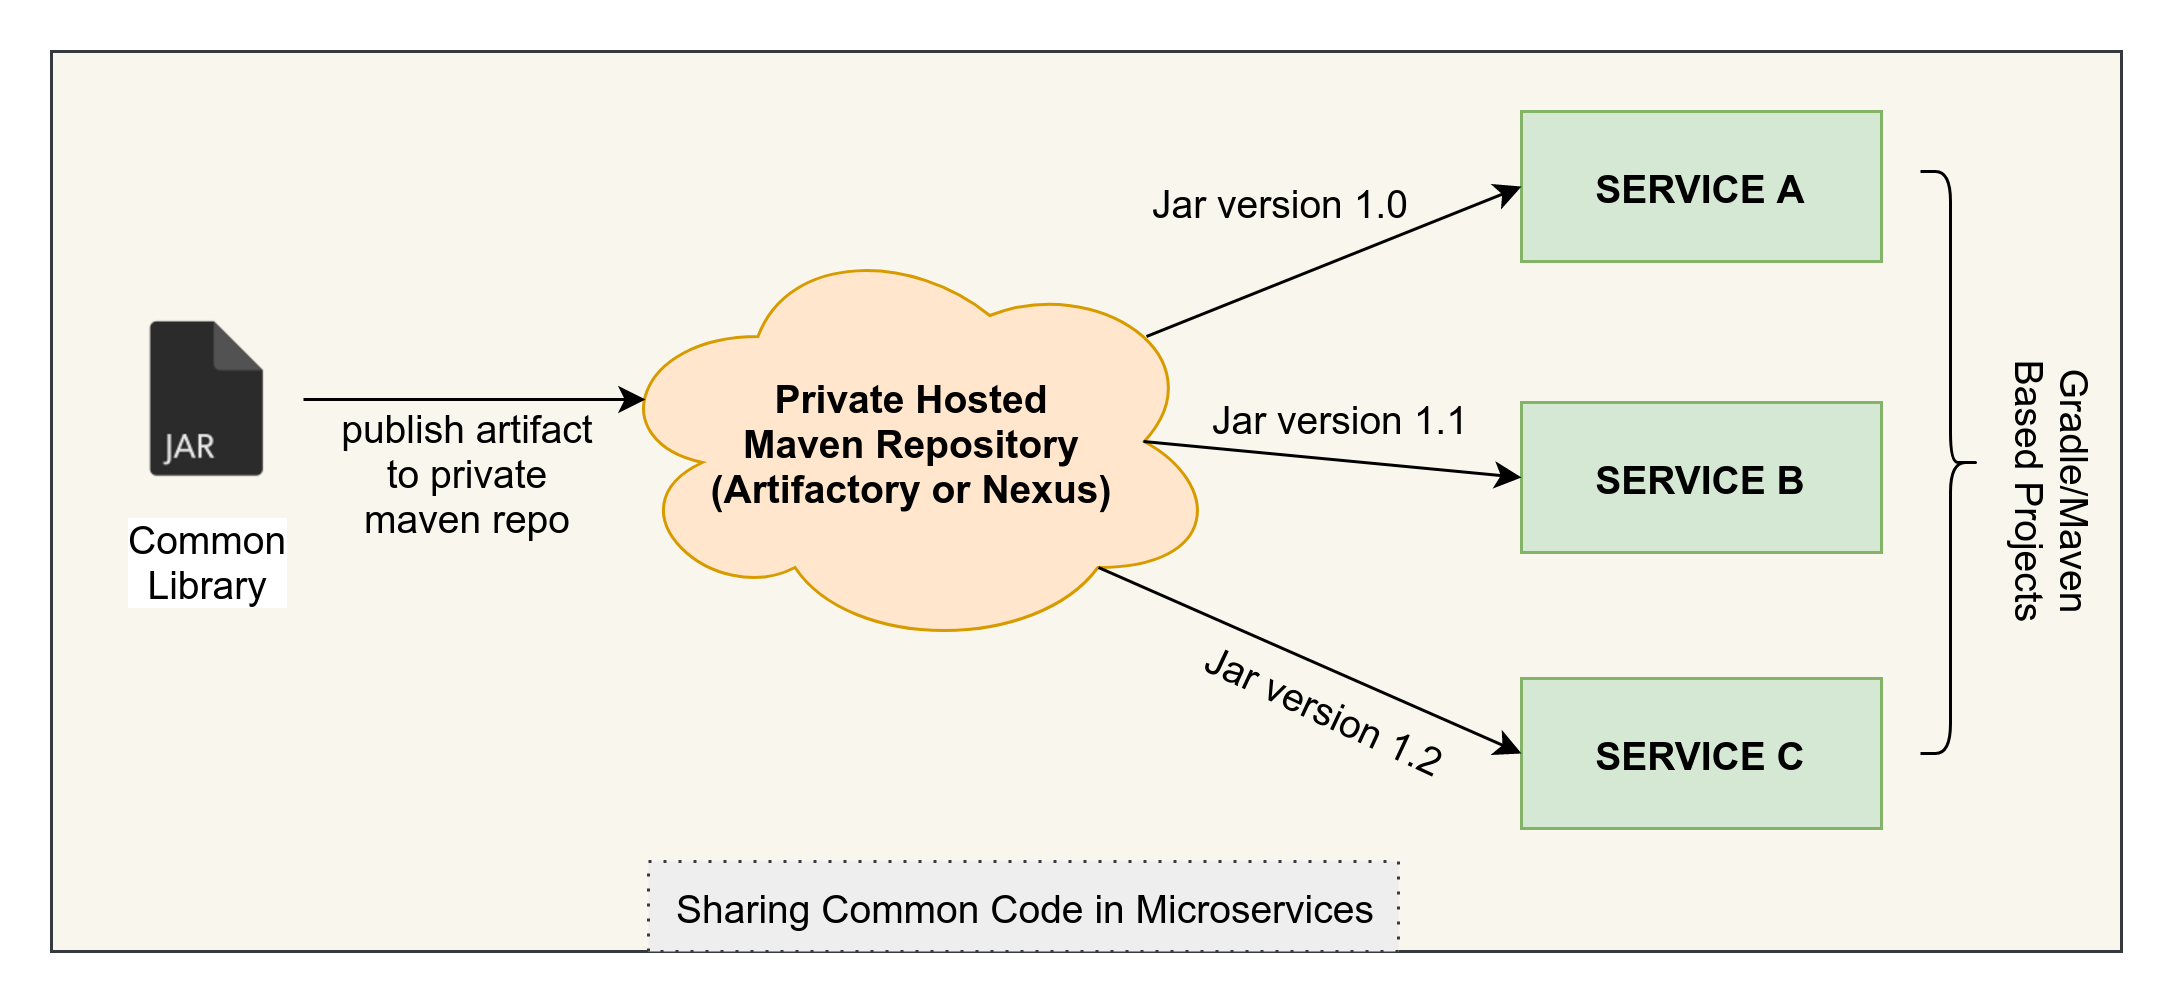 private hosted repository